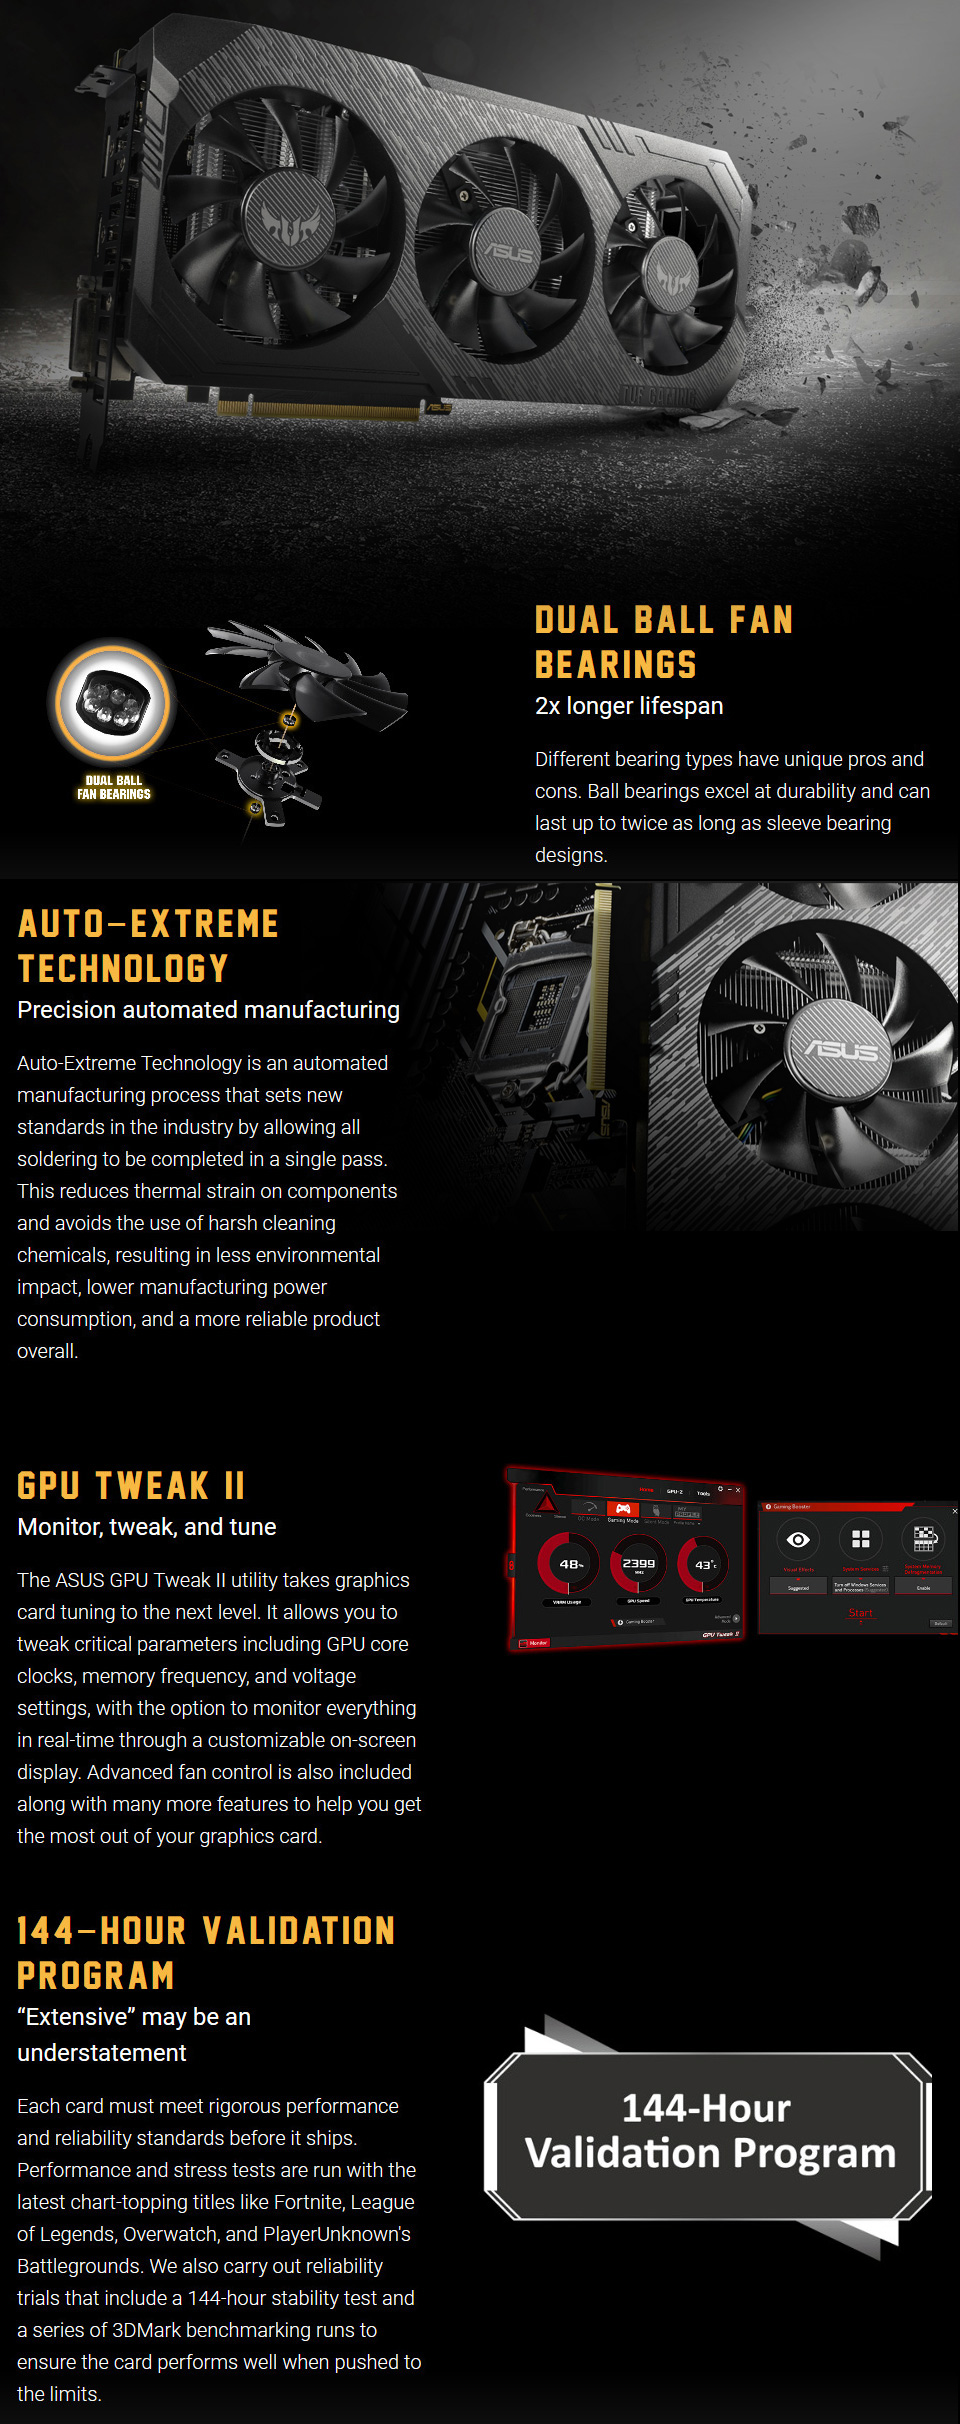 A large marketing image providing additional information about the product ASUS GeForce GTX1660 TUF Gaming X3 6GB GDDR5 - Additional alt info not provided